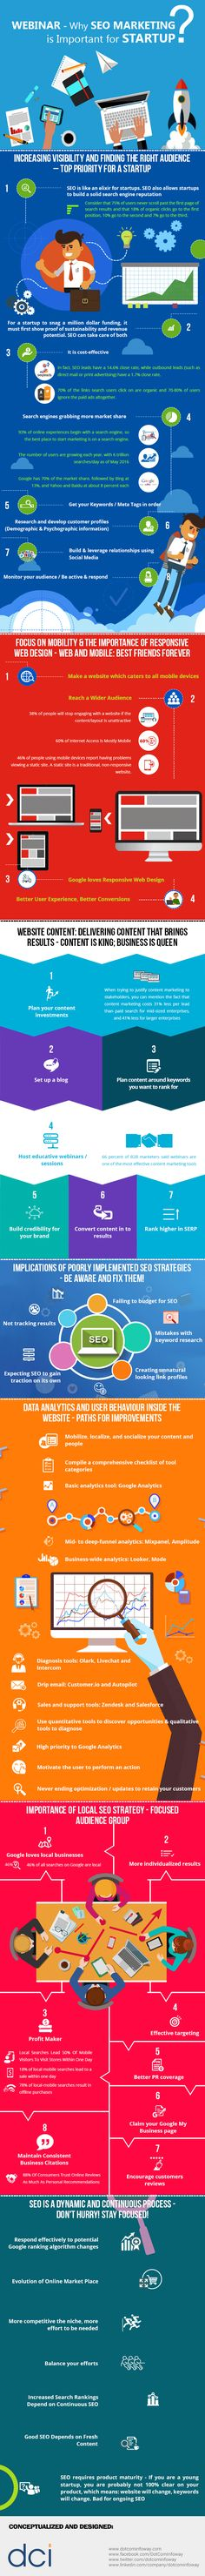 Importance of SEO Marketing for Startups [ Infographic ]